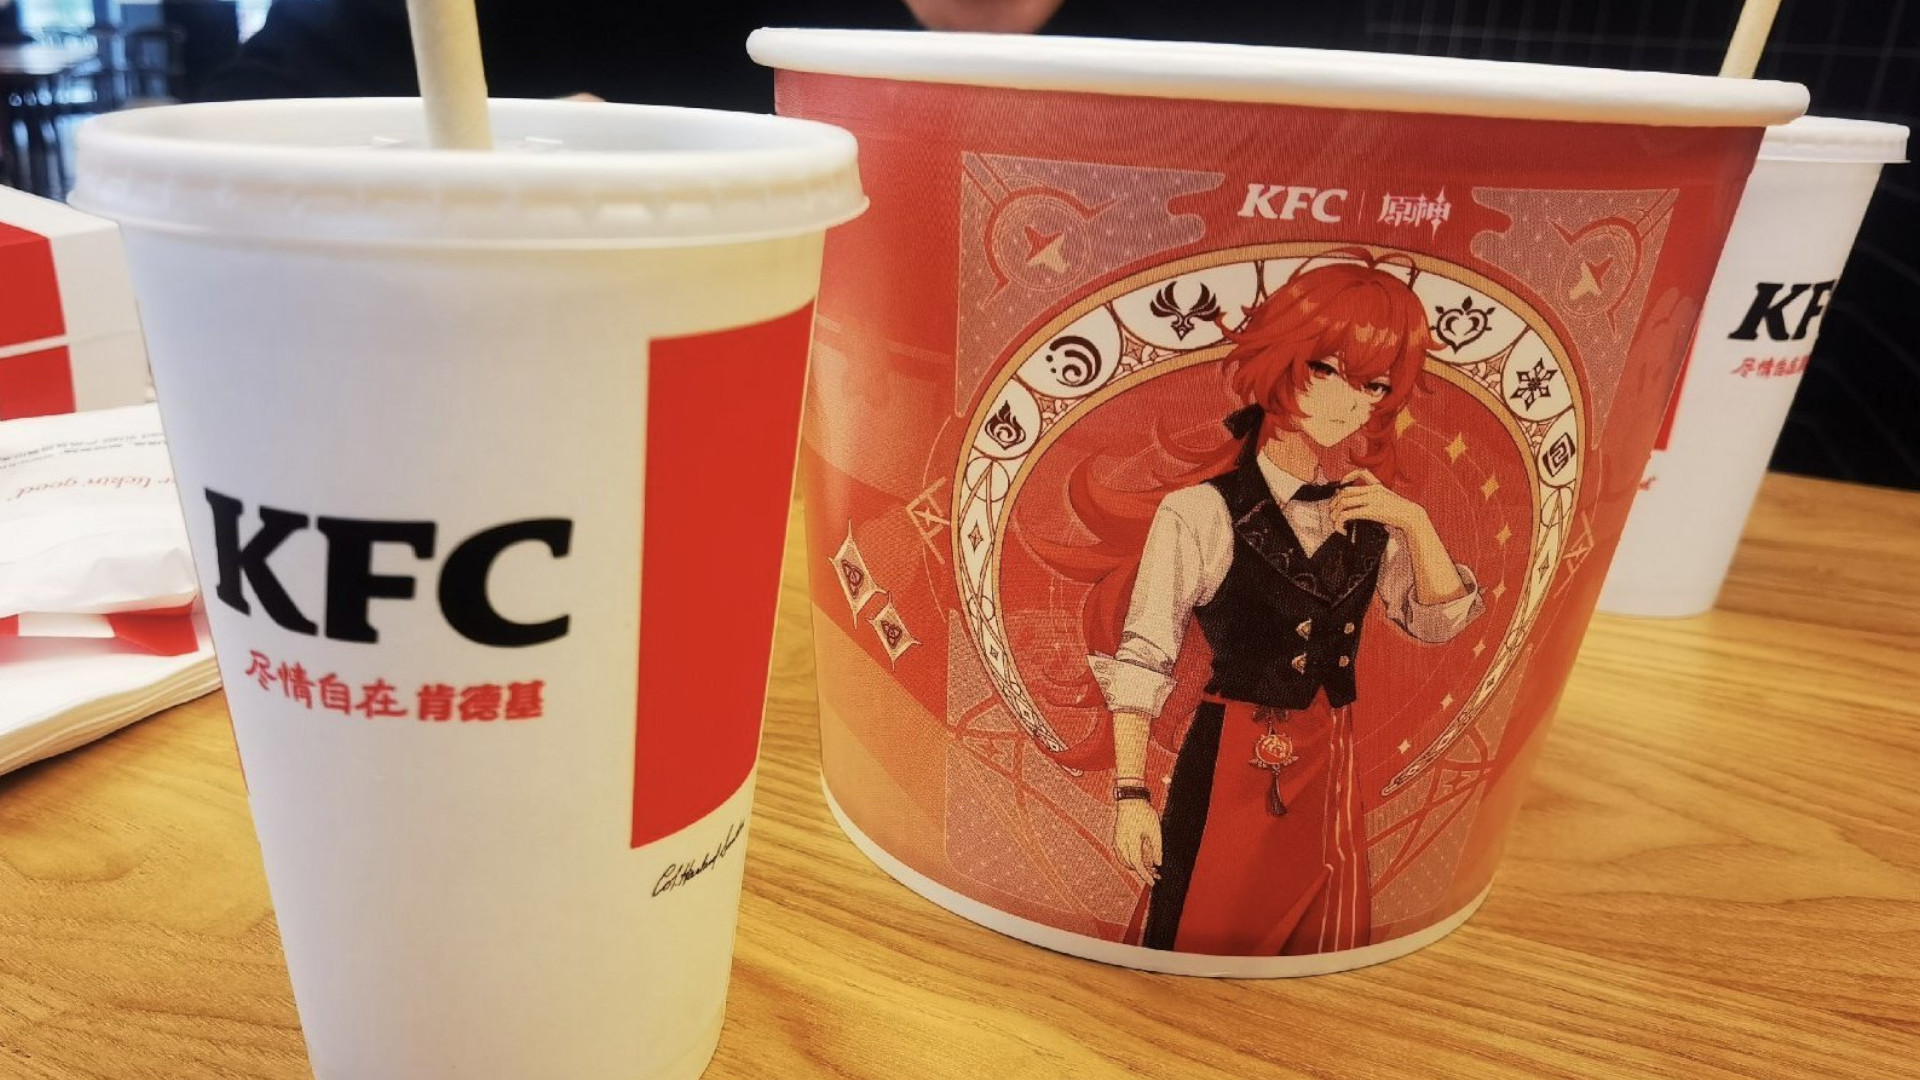 Genshin Impact event asks players to shout at KFC employees for pins